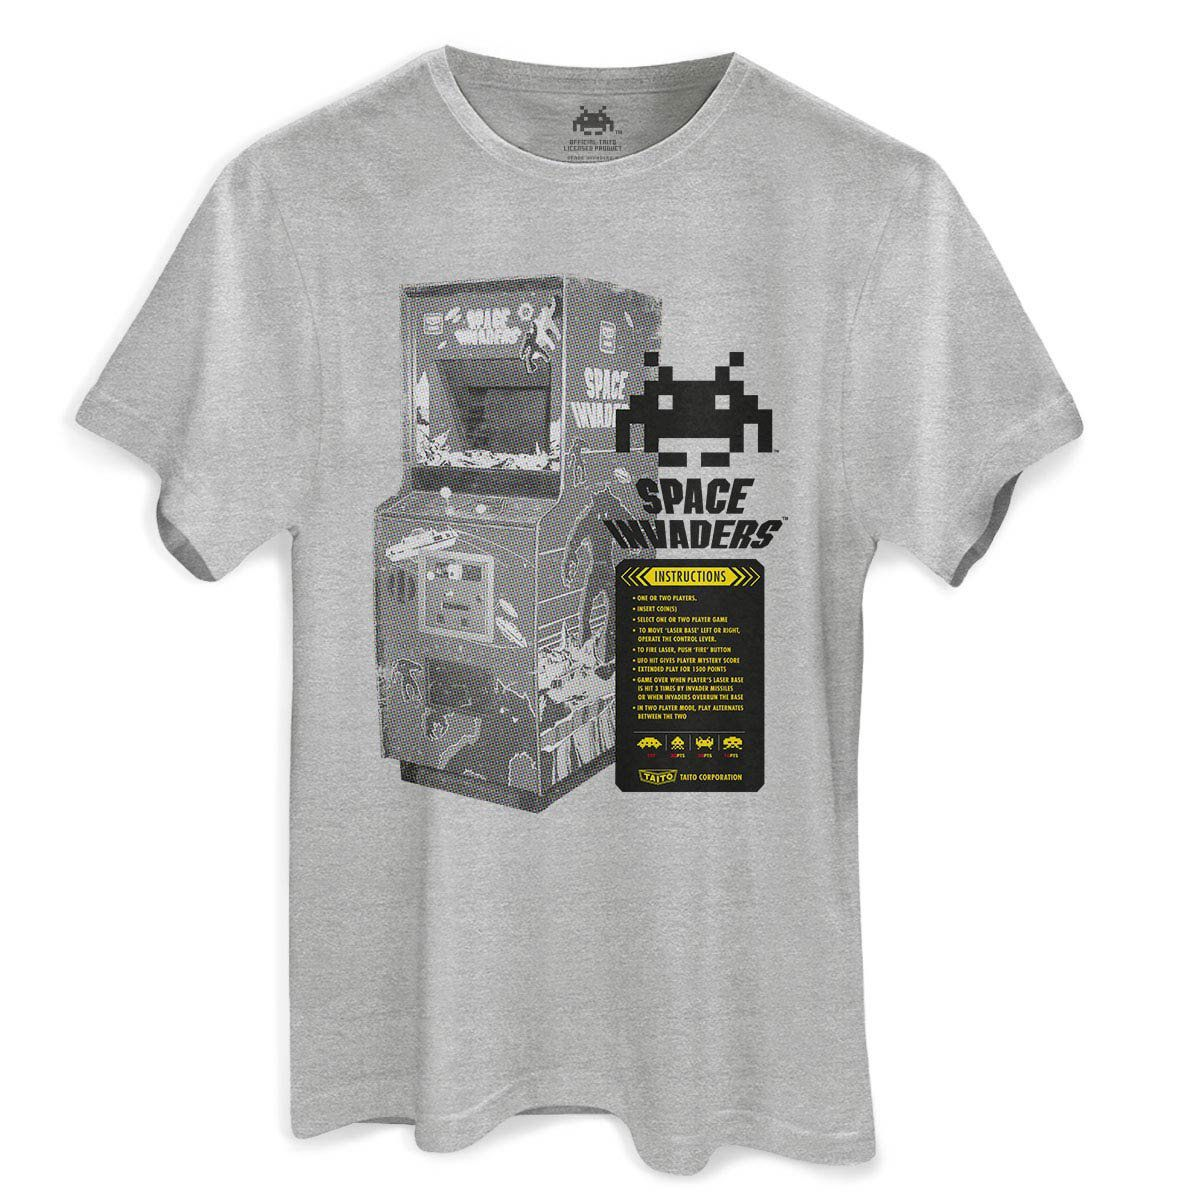 Camiseta Masculina Space Invaders Instructions  - bandUP Store Marketplace